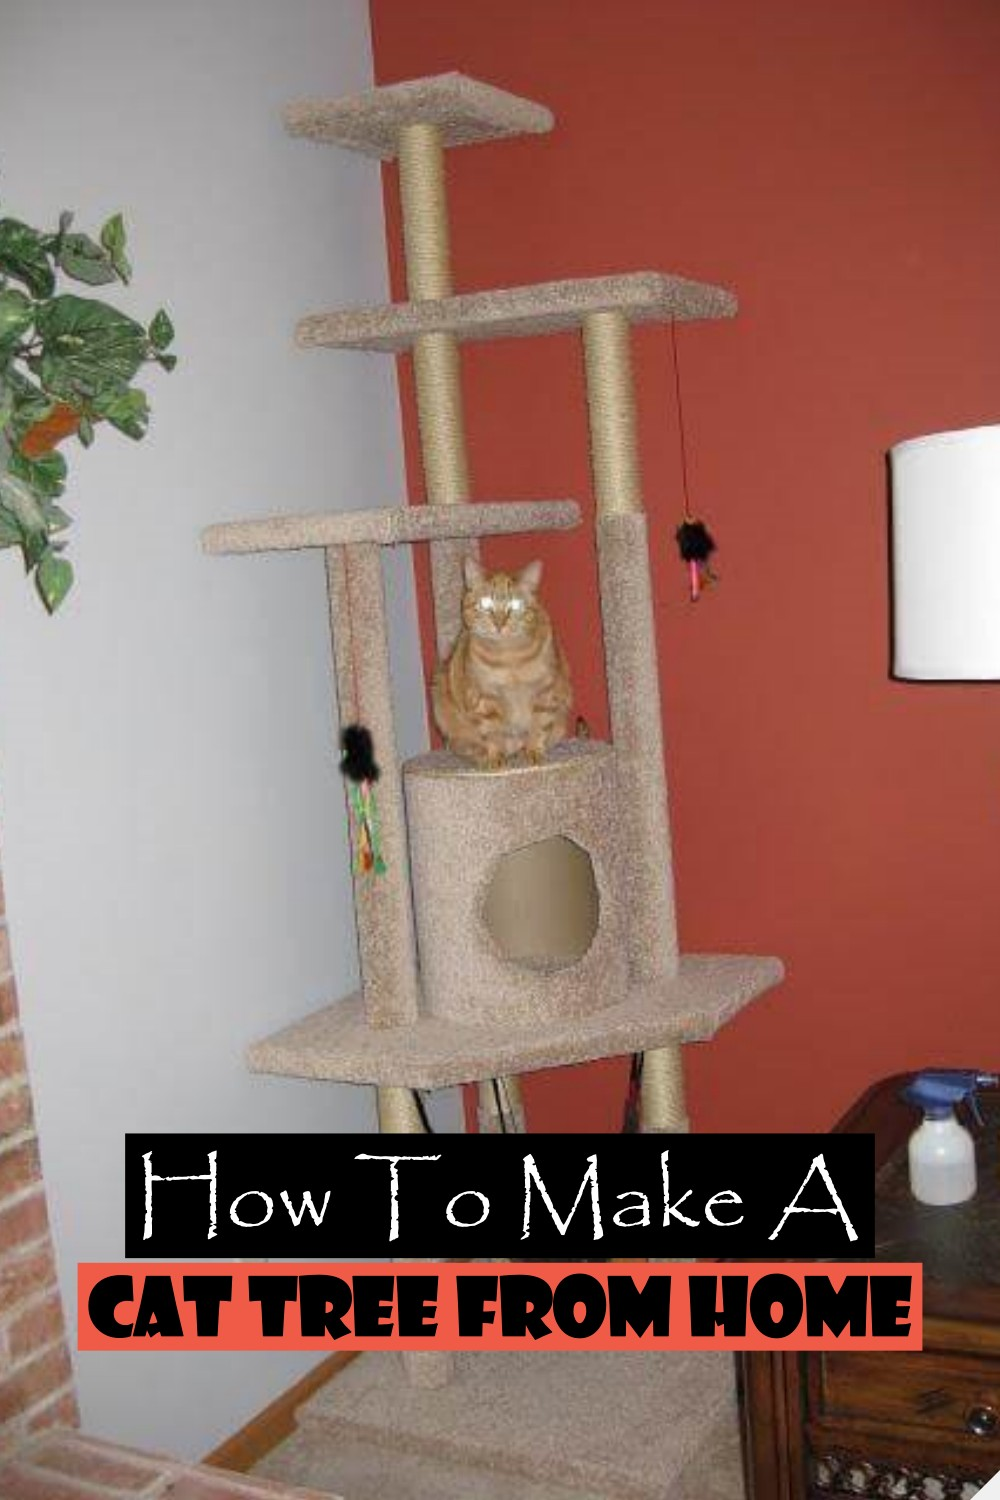 How To Make A Cat Tree From Home